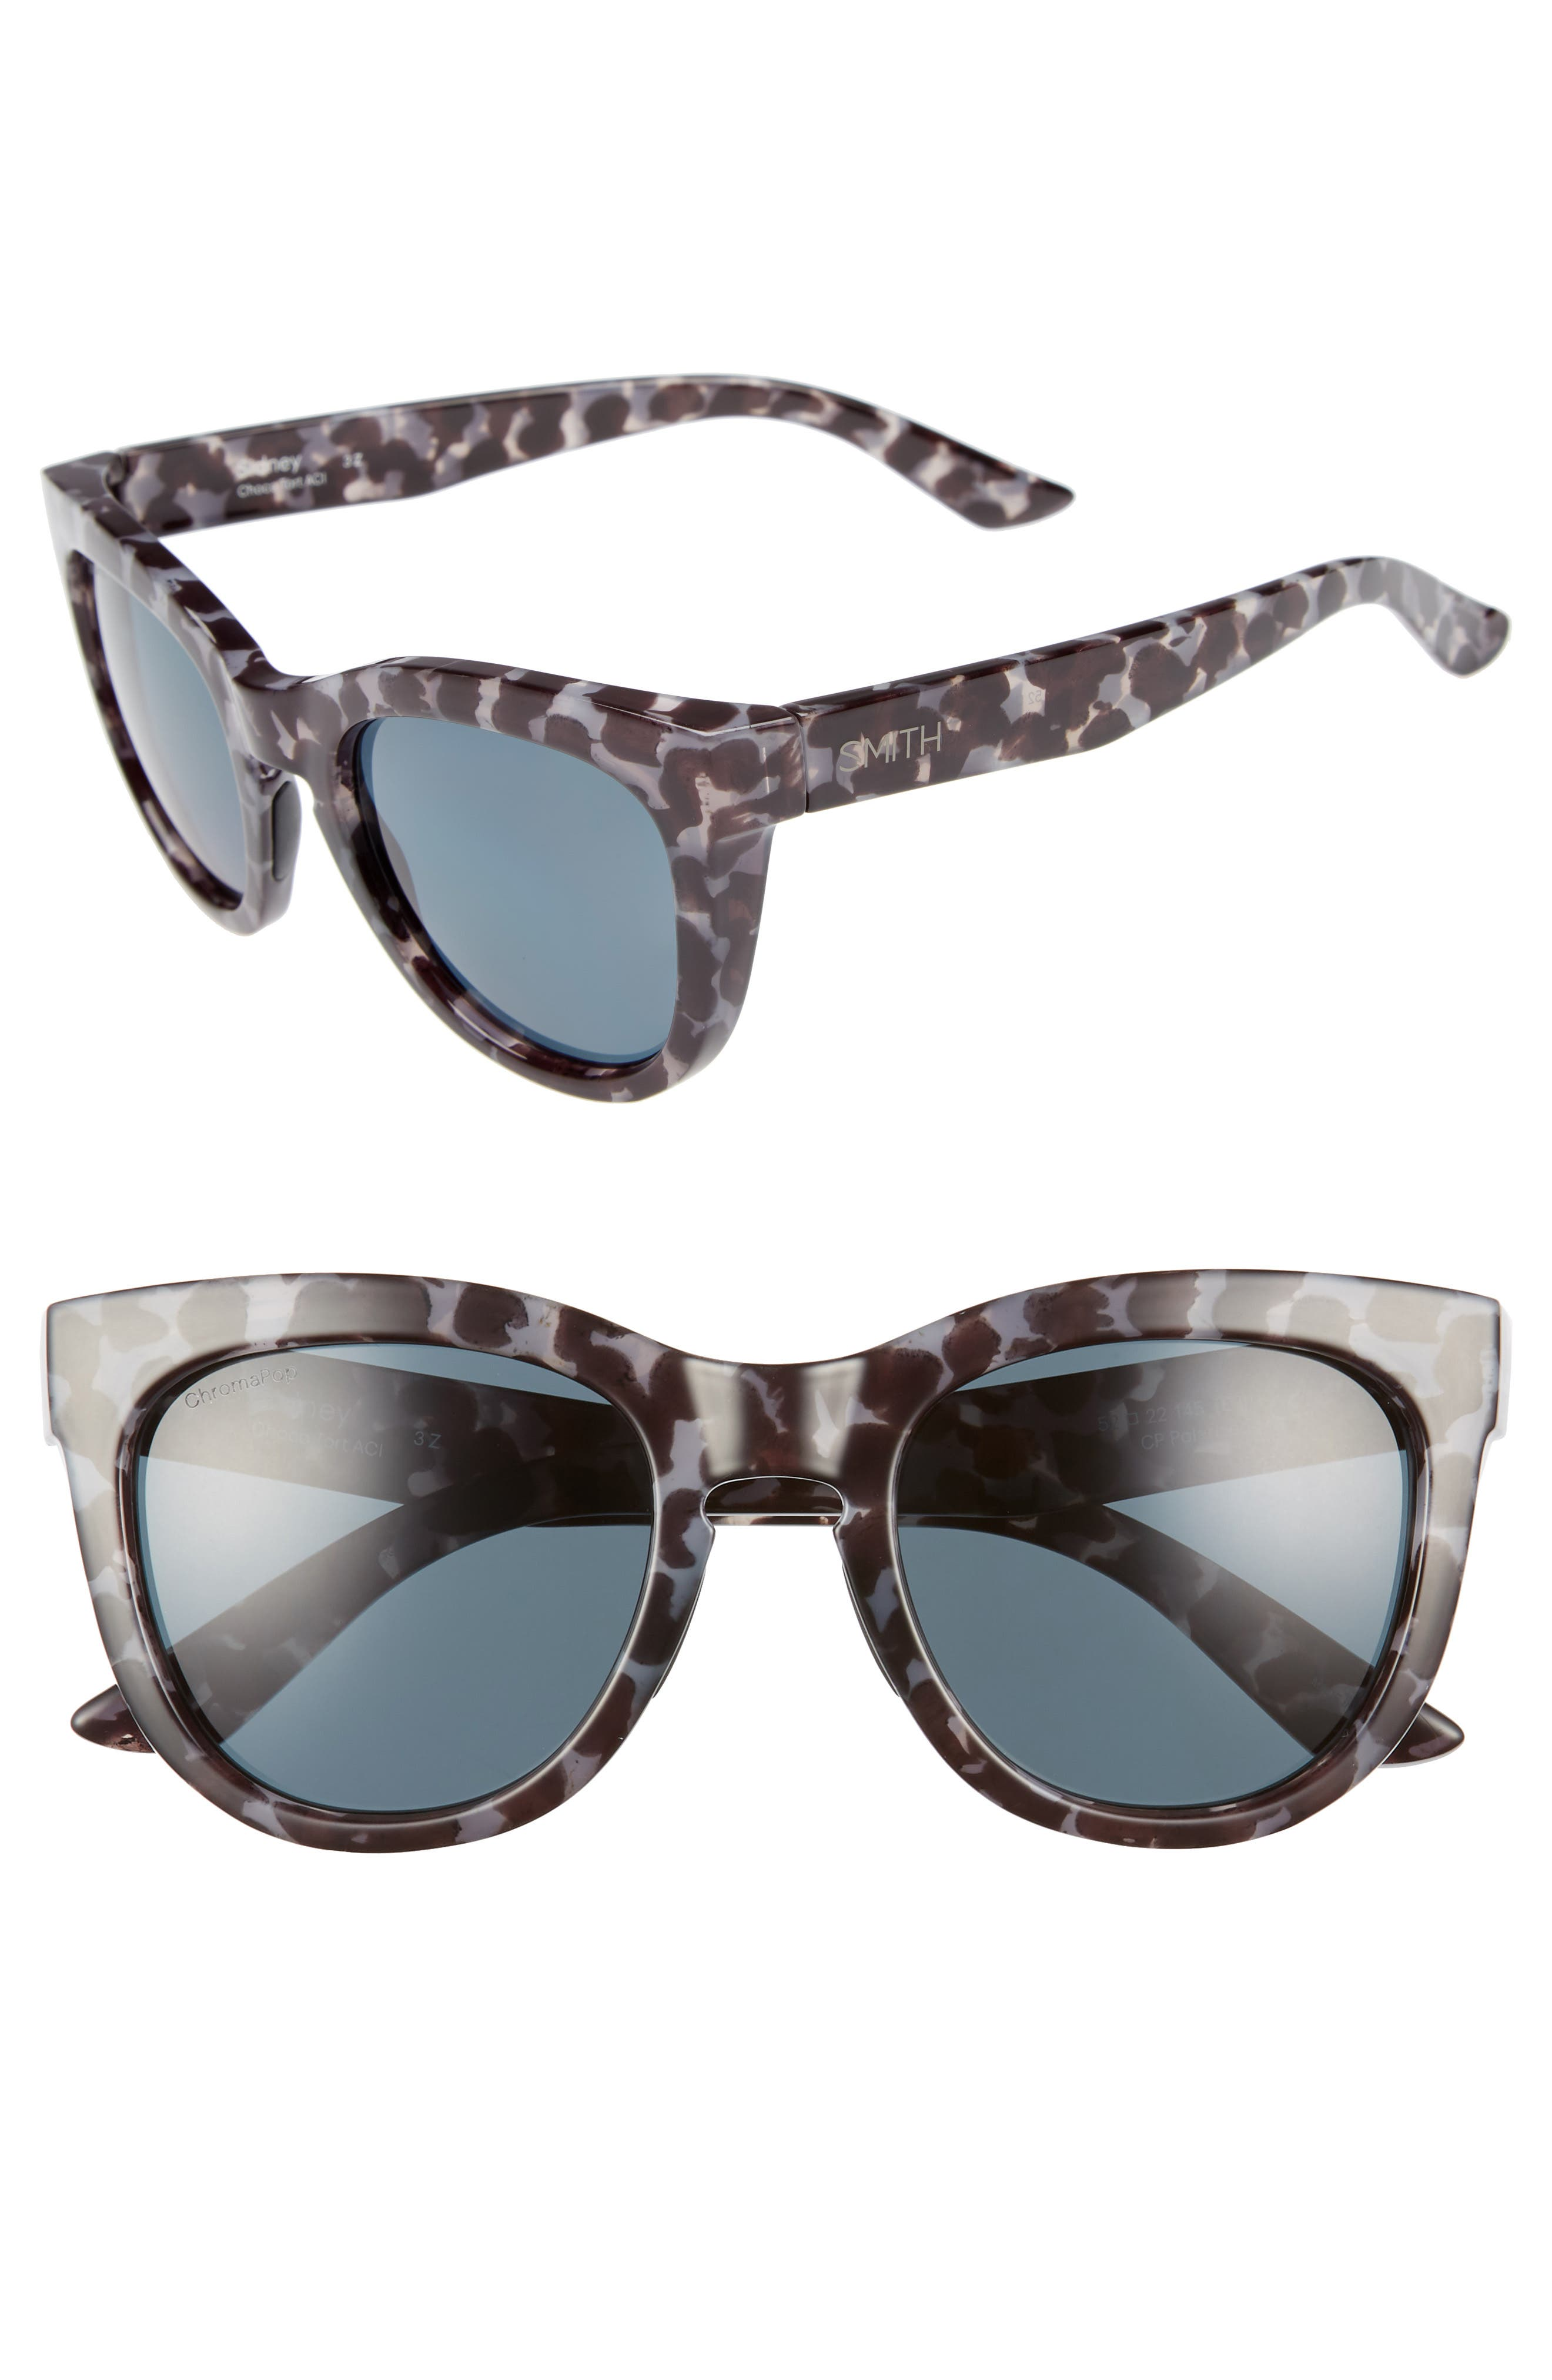 SMITH 'SIDNEY' 55MM POLARIZED SUNGLASSES - CHOCOLATE TORTOISE